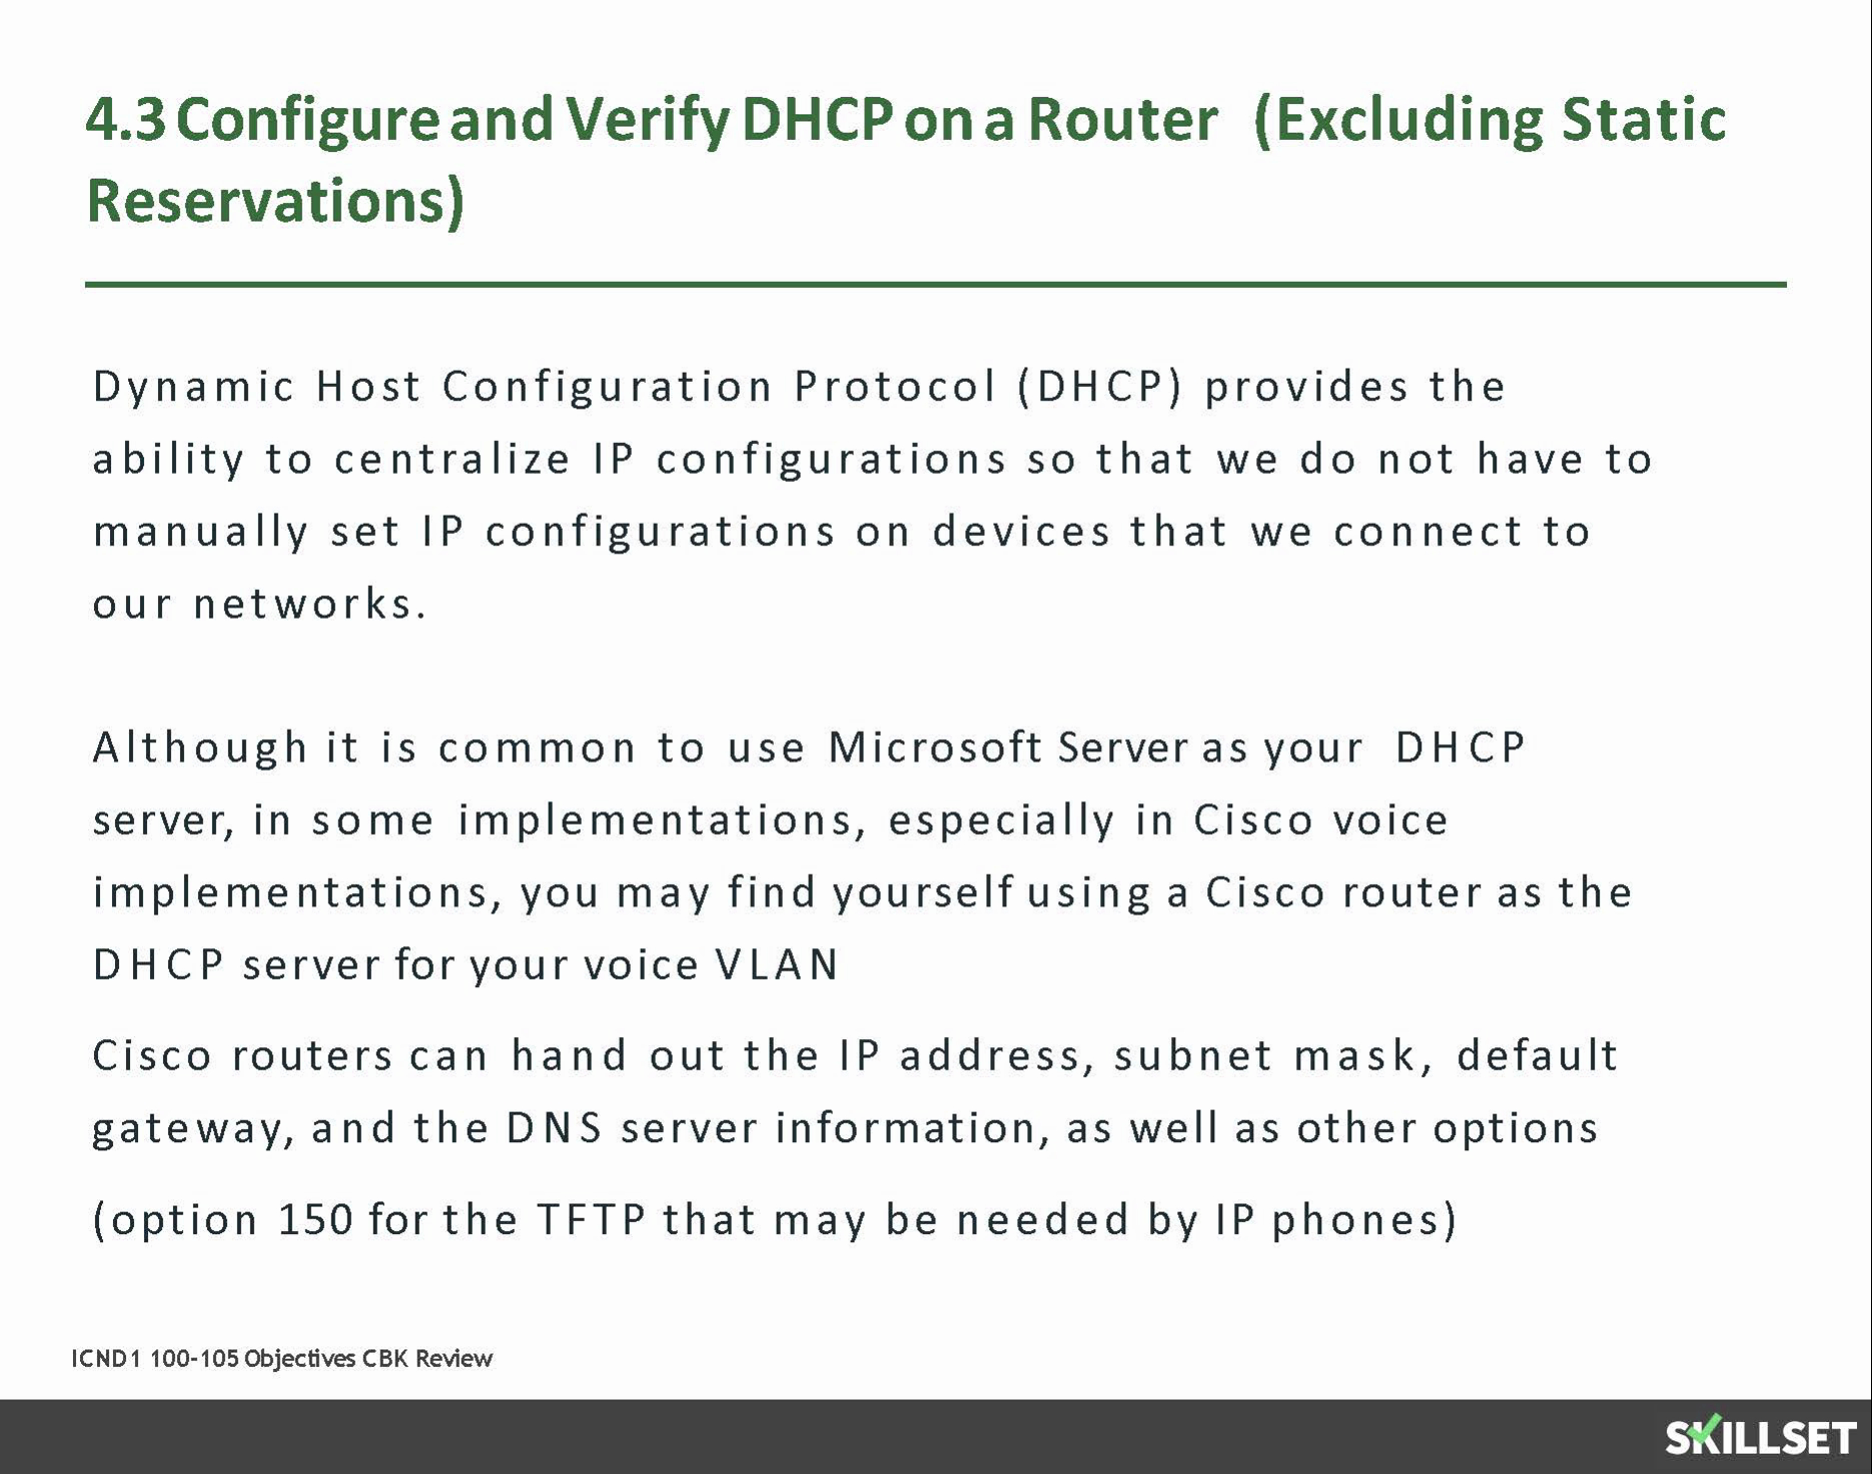 4.3 Configuring DHCP